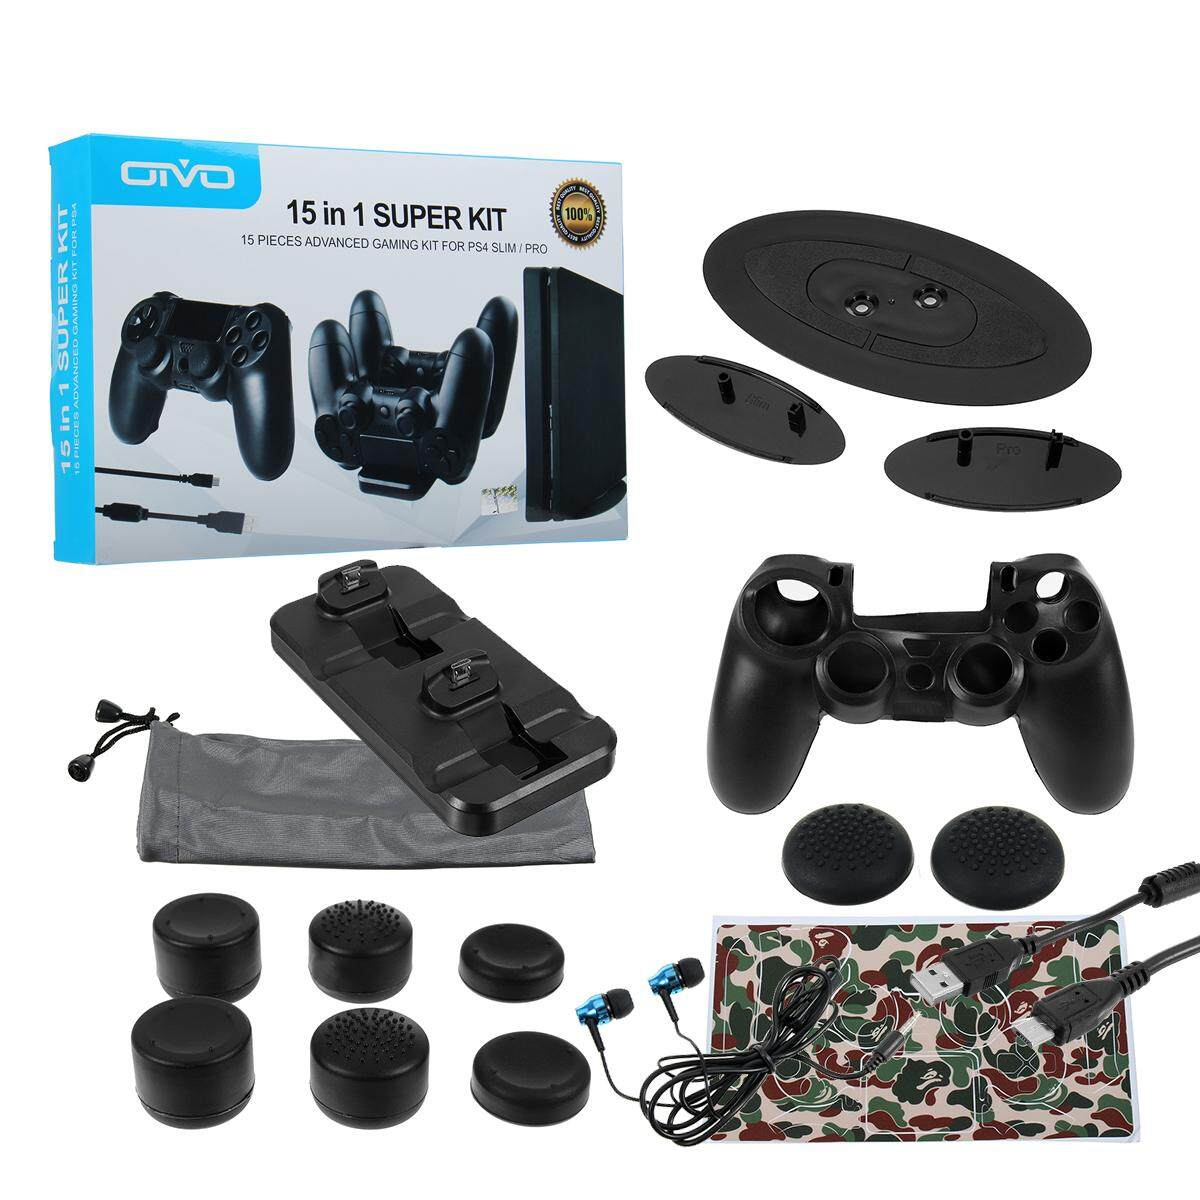 15 In 1 15 Pieces Advanced Gaming Kit For Ps4 Slim/pro - intl